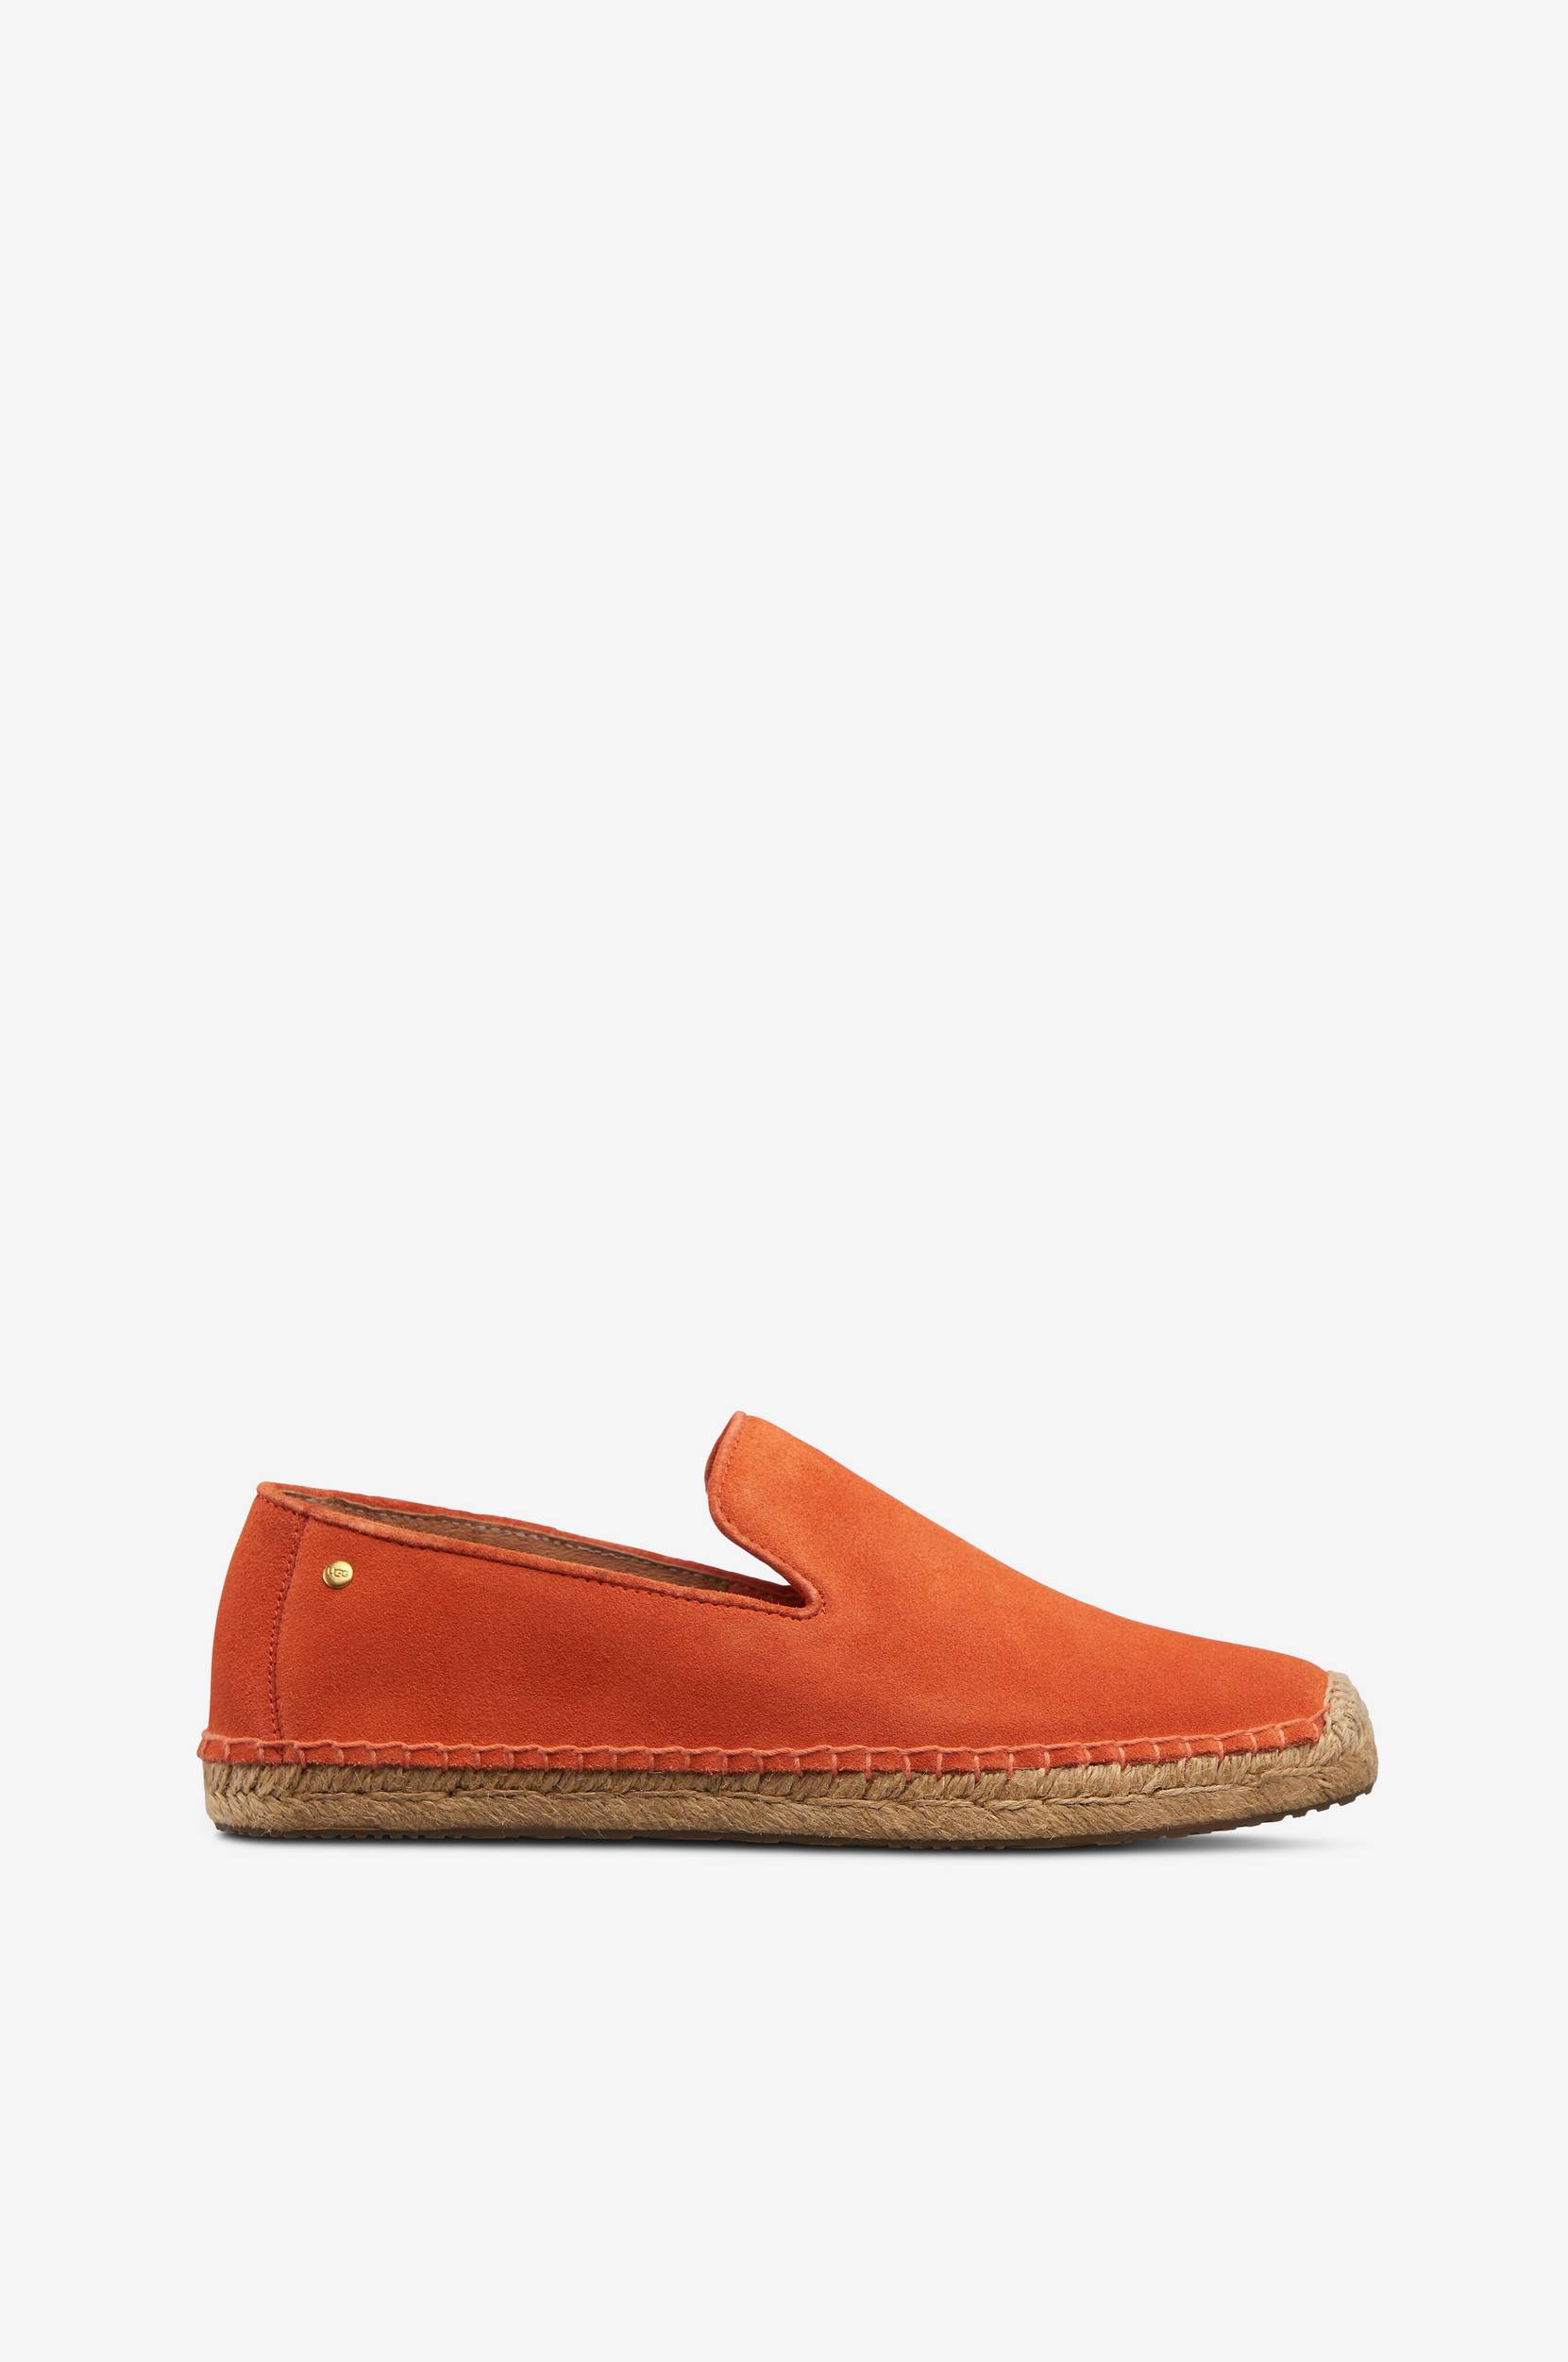 Sneakers Sandrinne II slip-on UGG Australia Sneakers til Kvinder i Orange